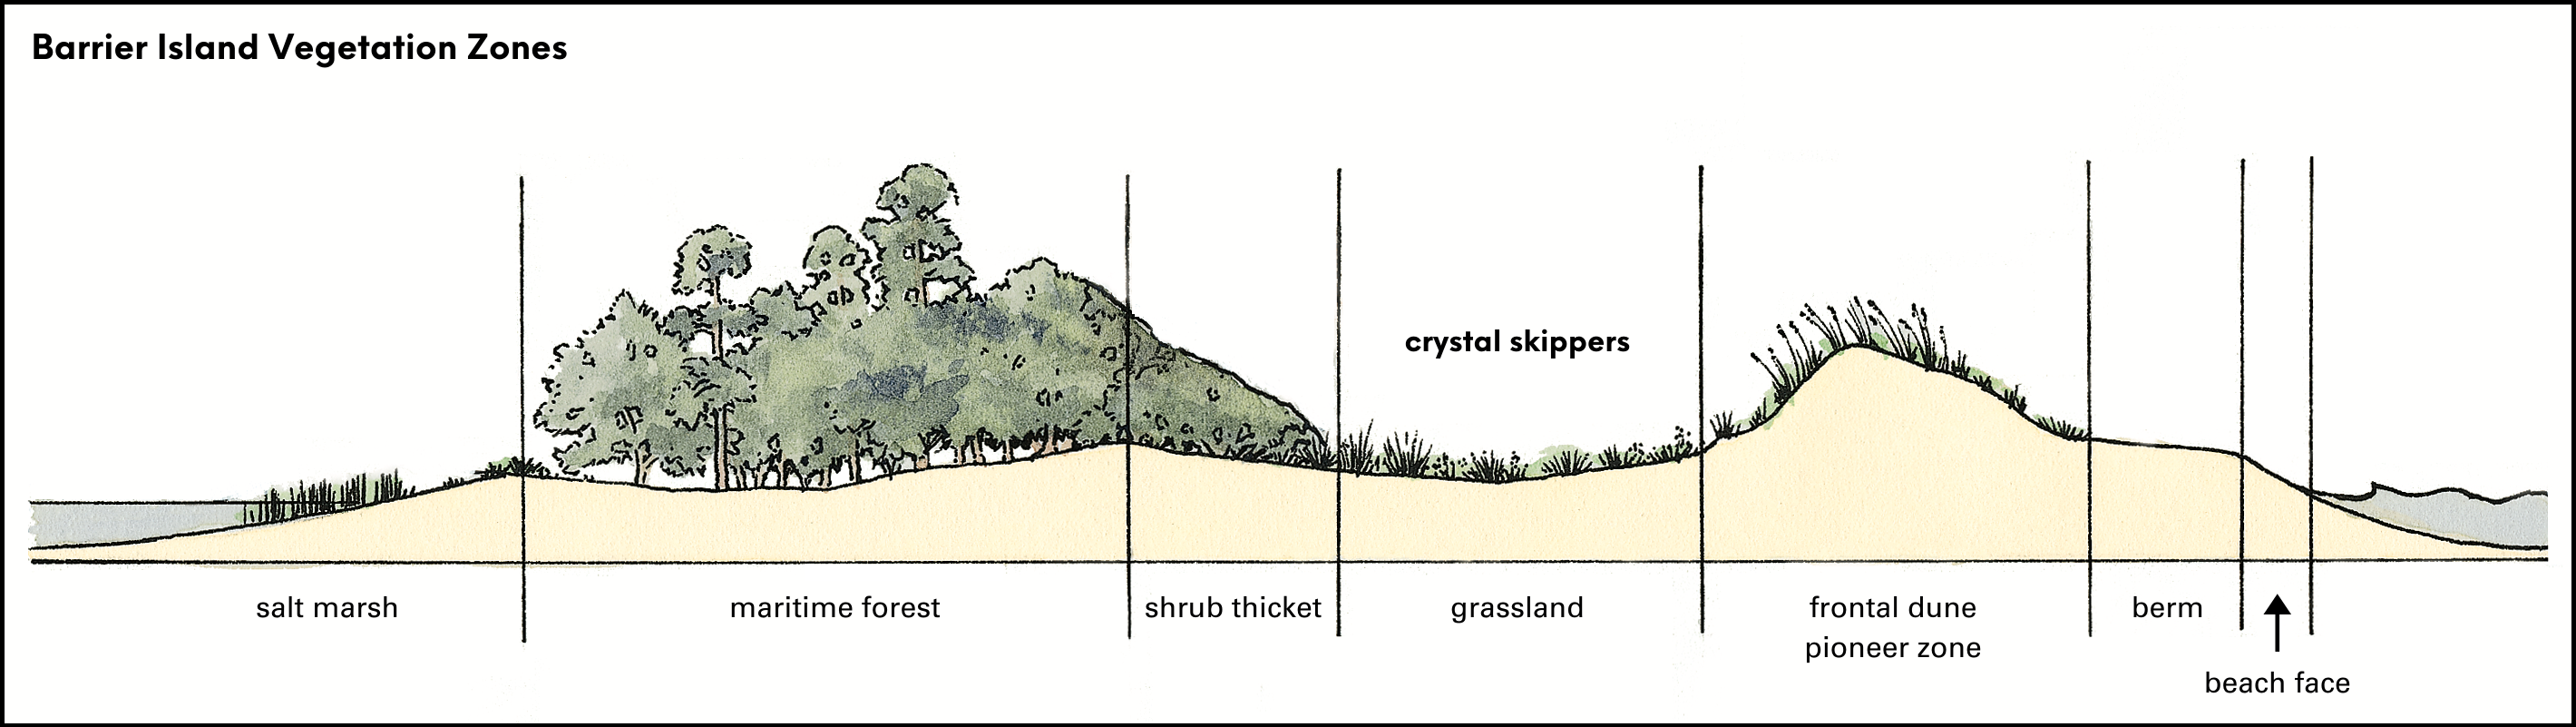 Crystal skippers rely on dune vegetation that grows in swales between sea oats and shrub thickets. Adapted from an illustration by David Williams for The Dune Book